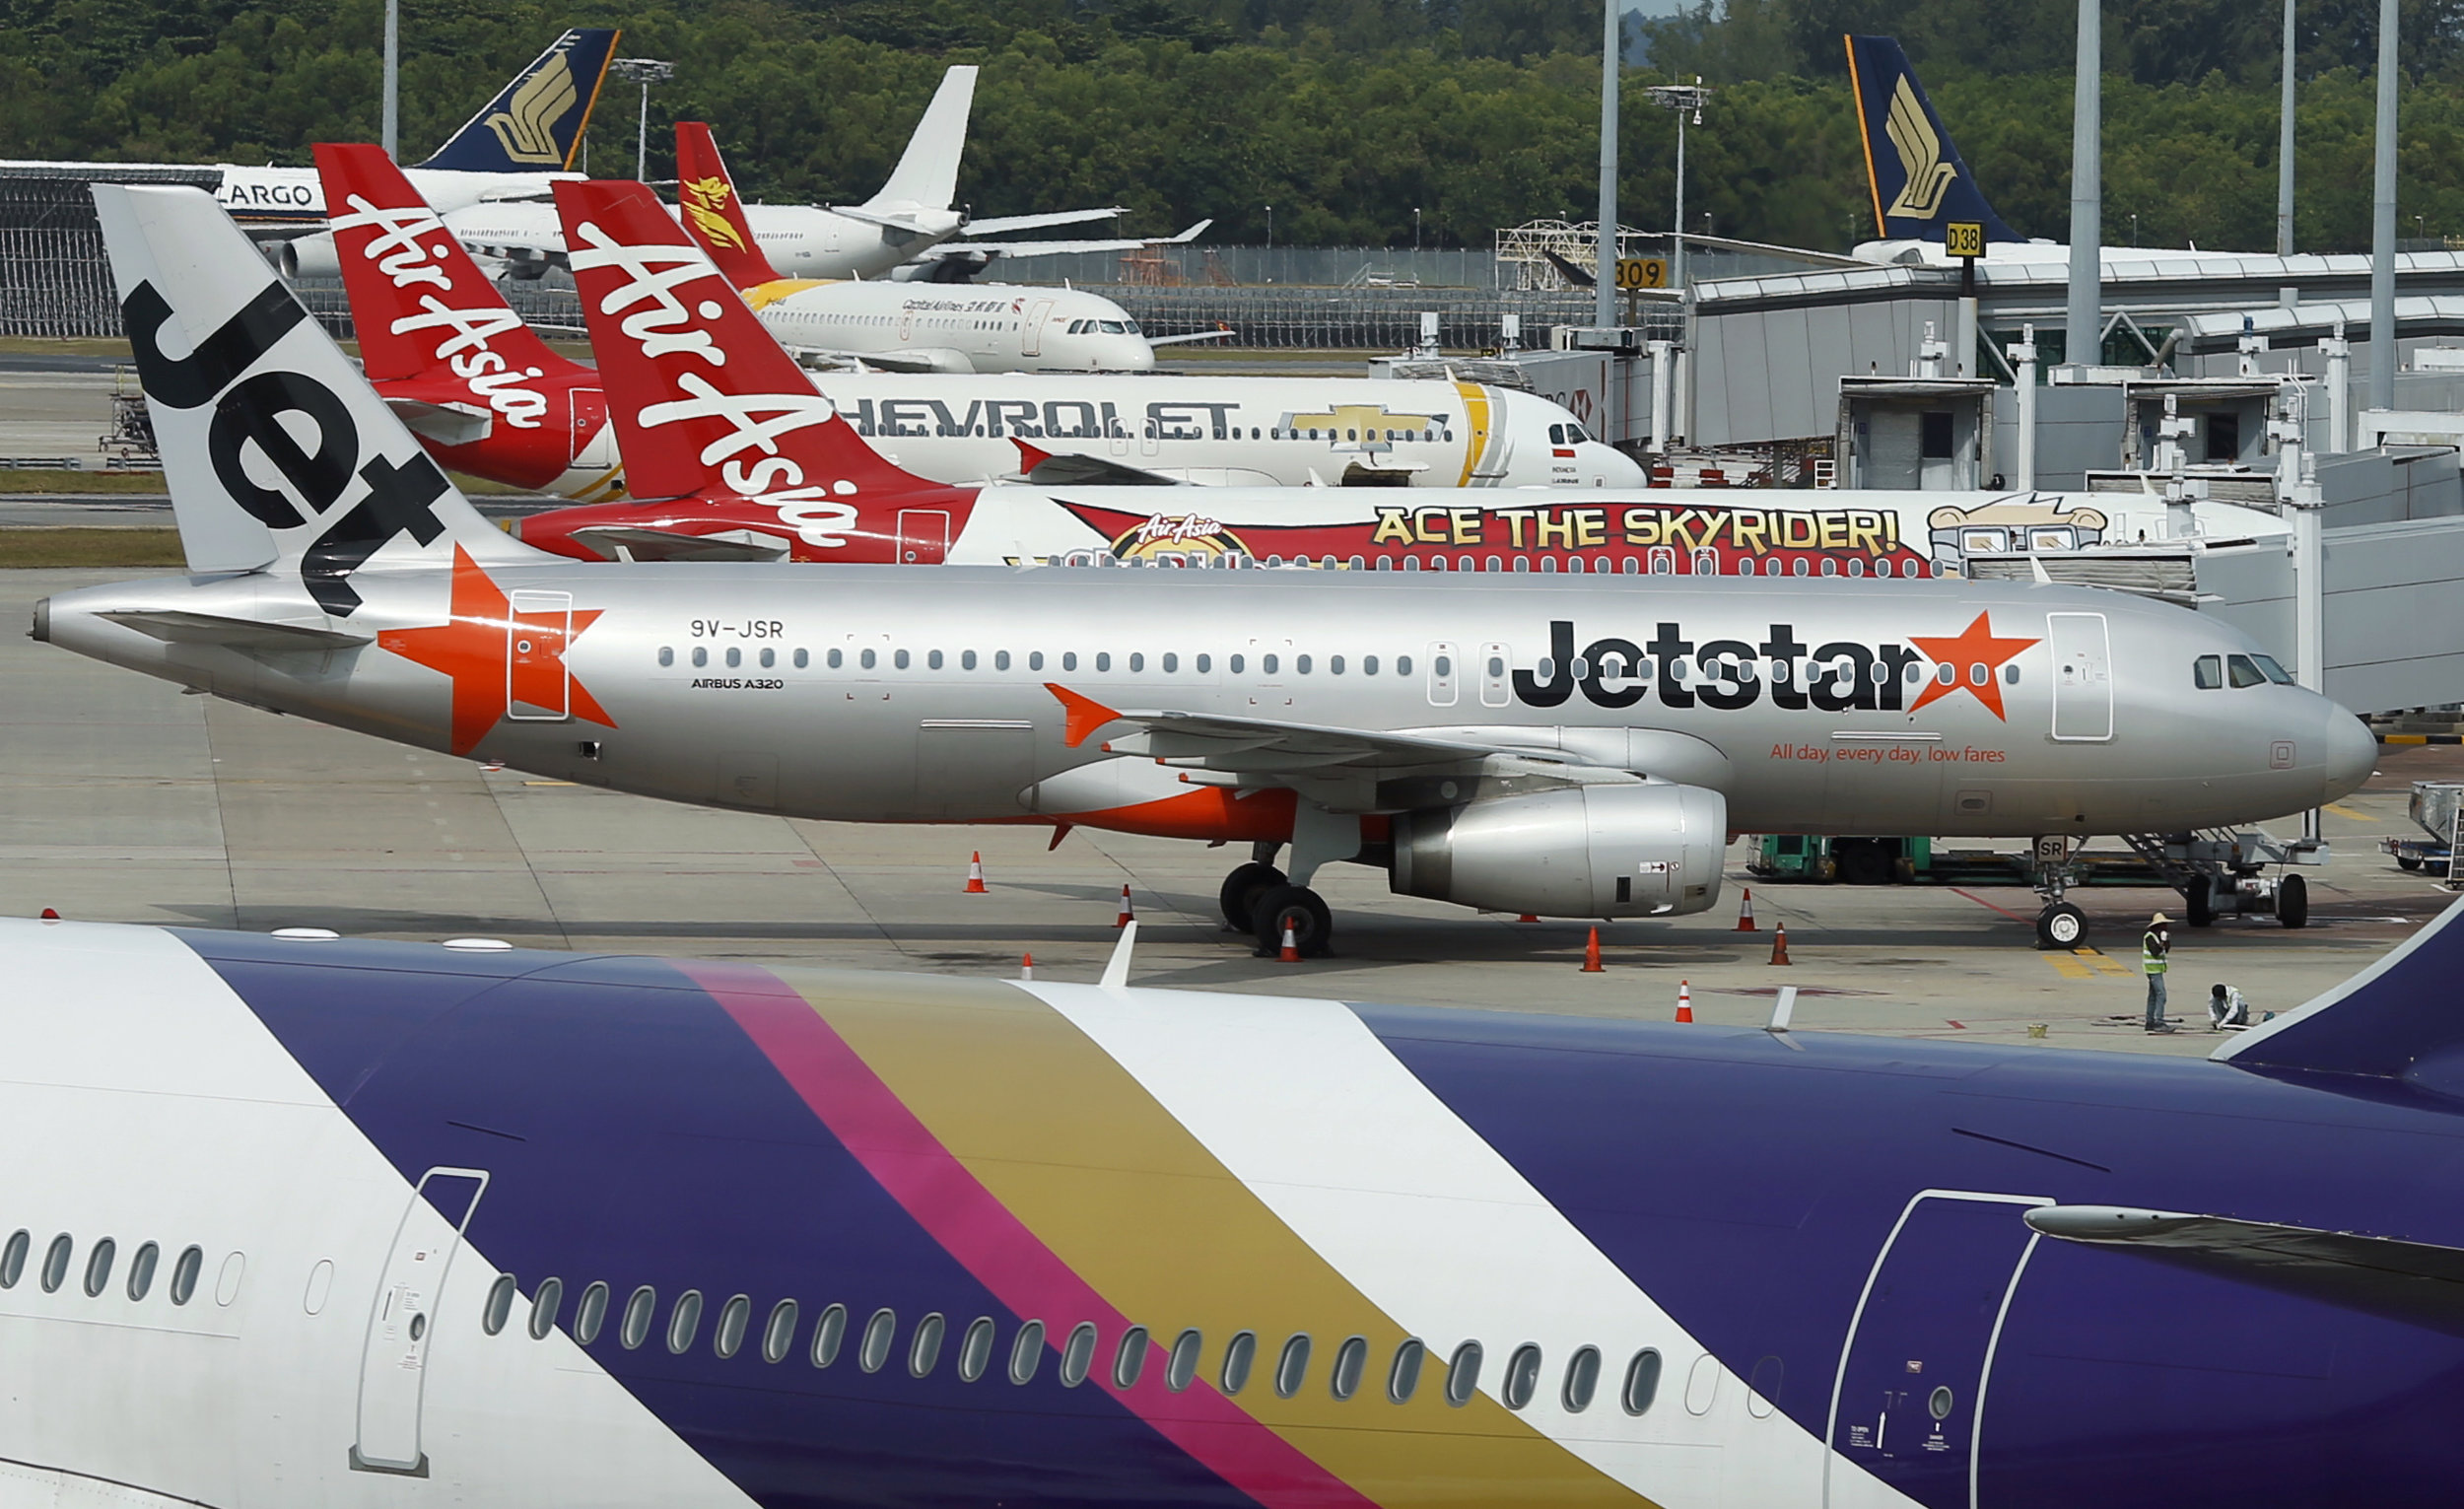 Jetstar and AirAsia are both carriers that have benefitted greatly from passengers demand between Singapore and Kuala Lumpur,  photo from Business Insider